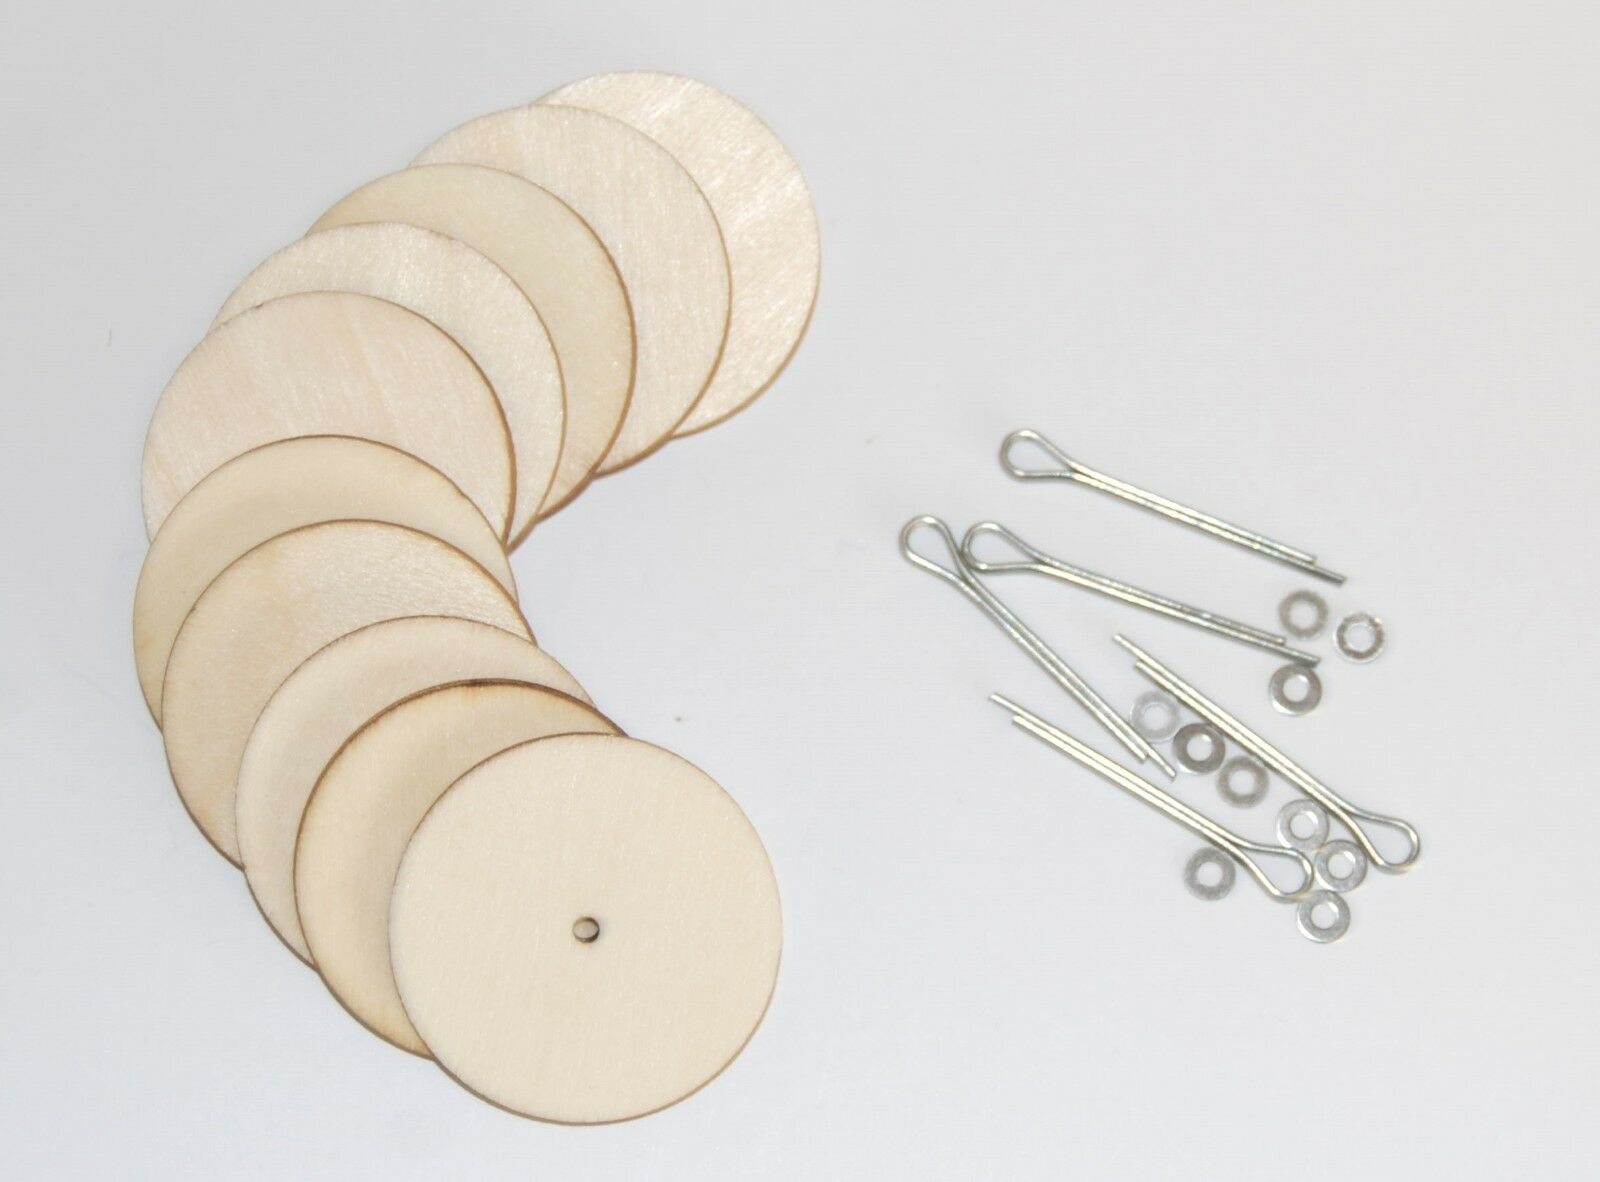 Cotter Pin Joints for Soft Soft Soft Toys & Teddy Crafts - 5 Part Joint Sets- 6mm to 50mm a0bea6